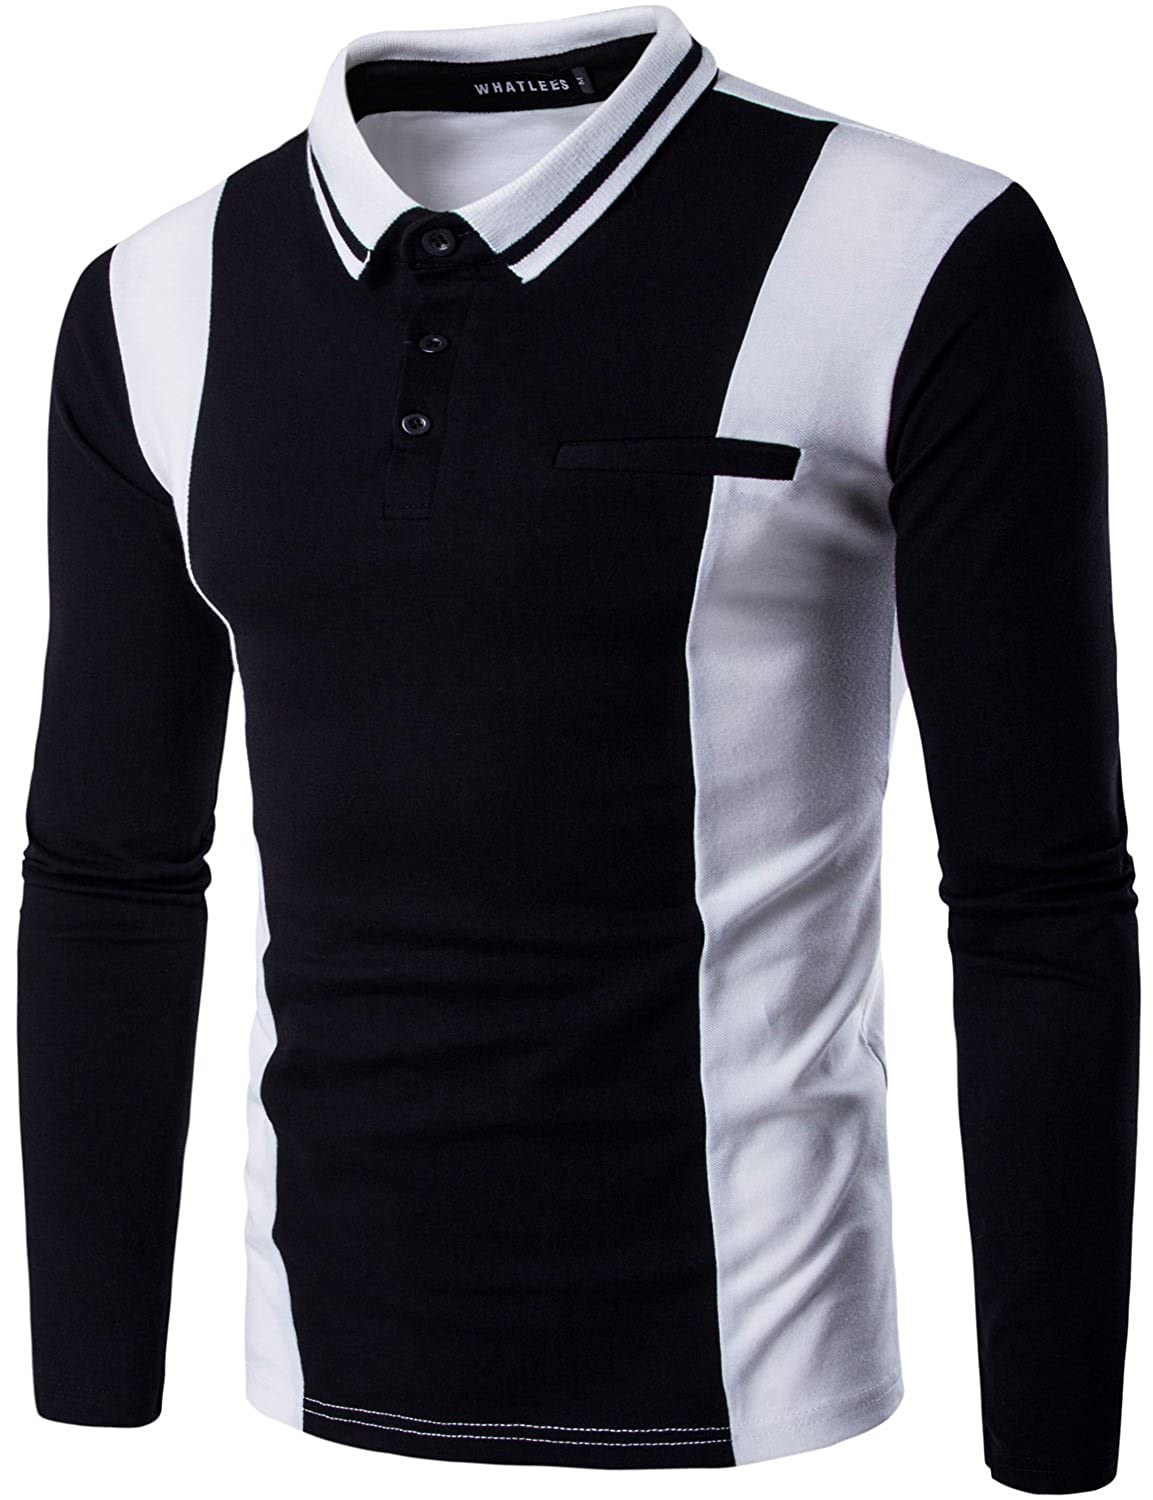 Whatlees Men's Casual Slim Fit Long Sleeve Polo Shirts Tops